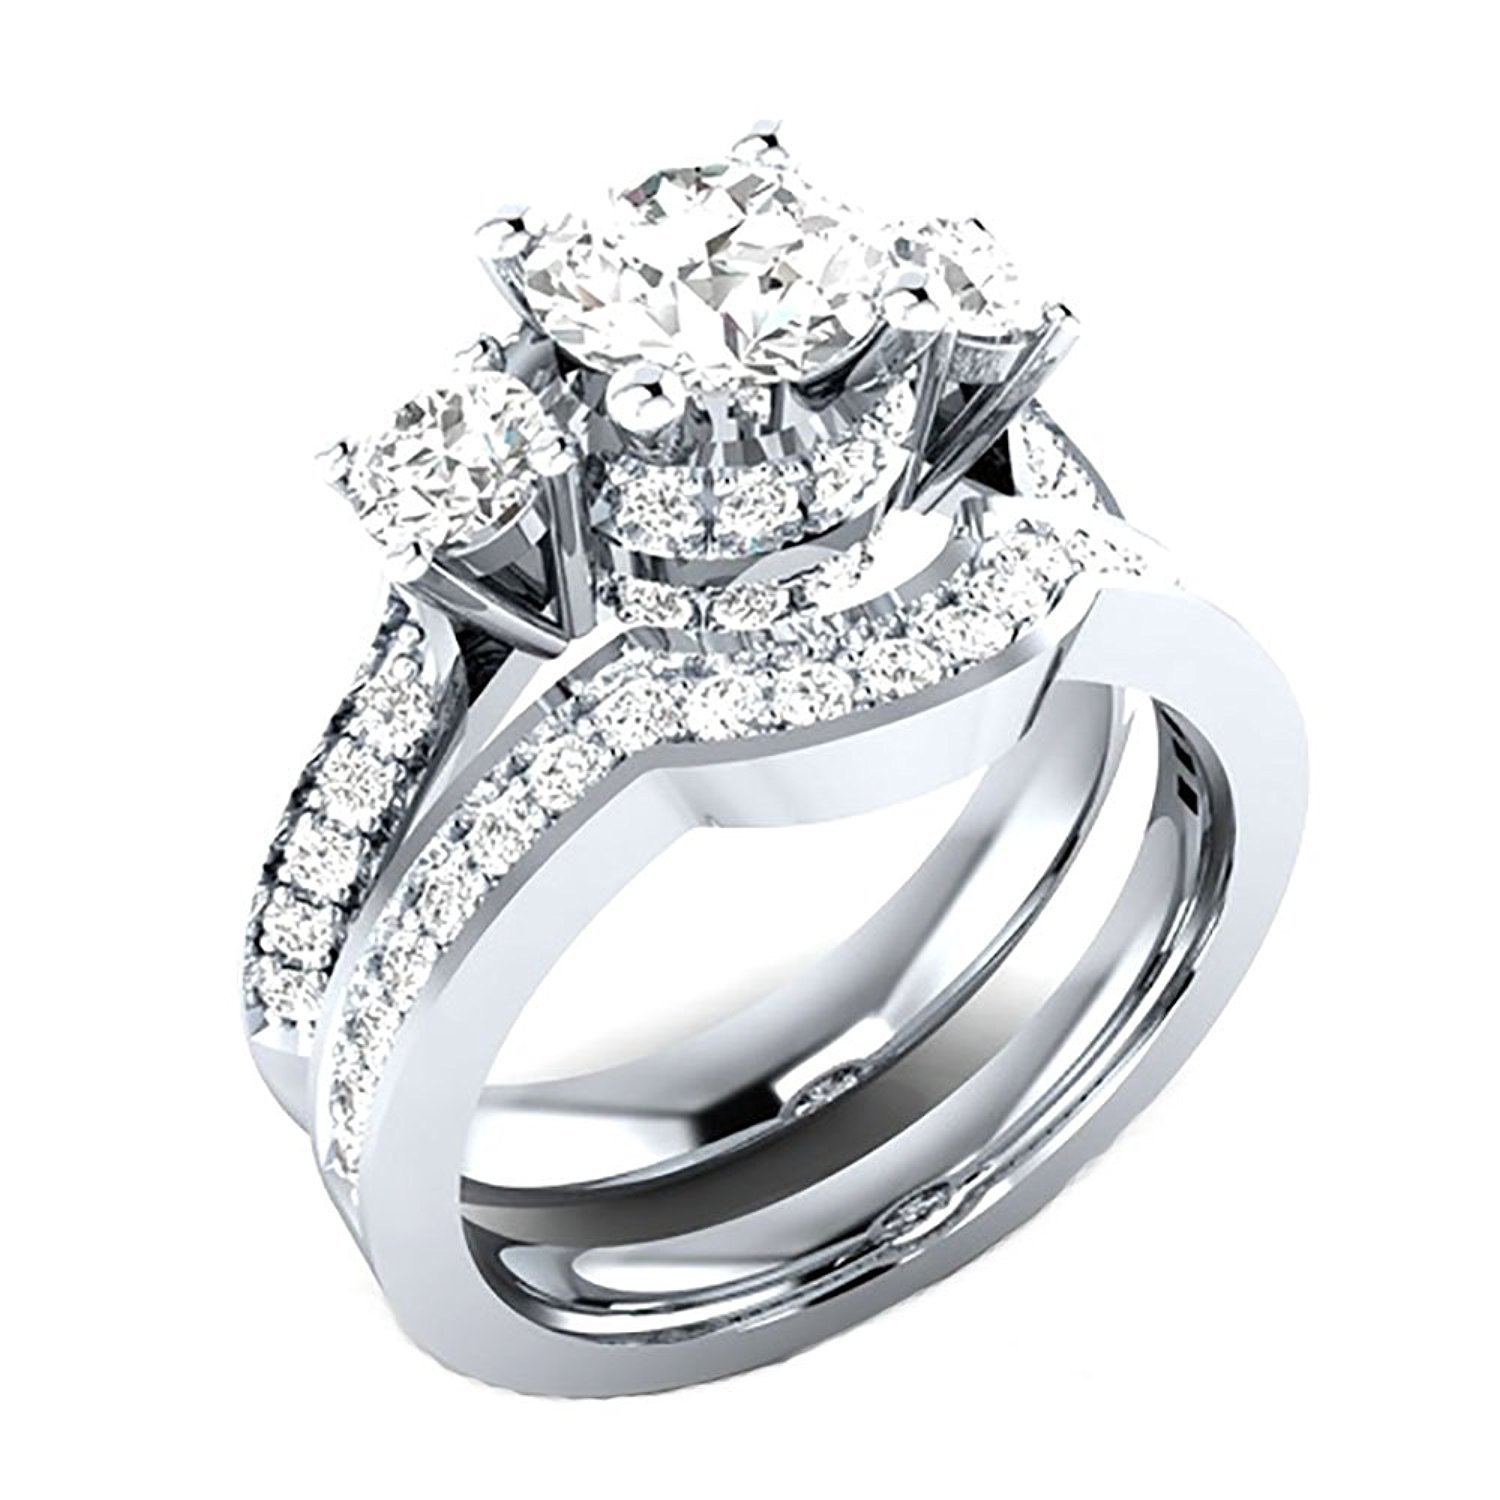 bands one gallery tacori ring band of rings regarding wedding viewing in engagement attachment photo and diamond